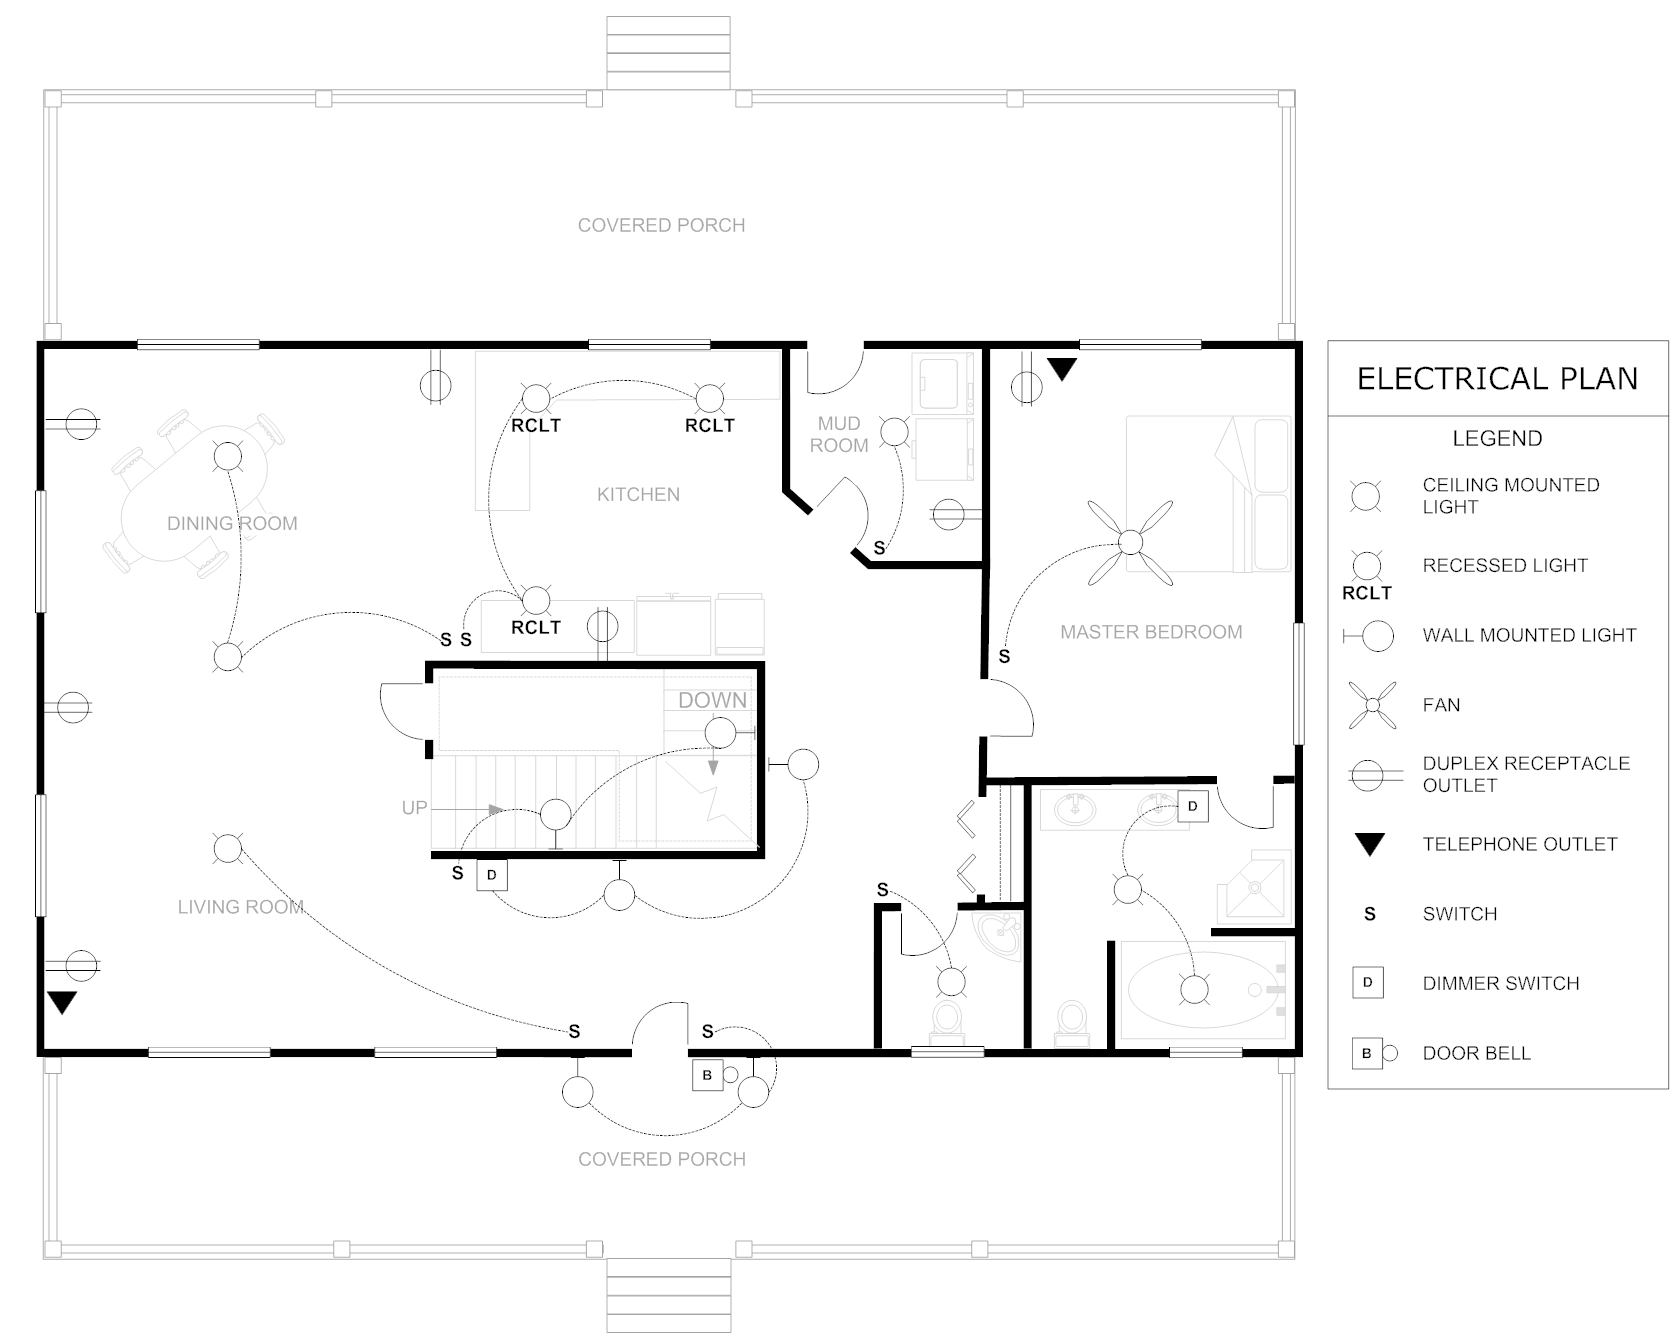 Sample Electrical Plan Layout - Merzie.net